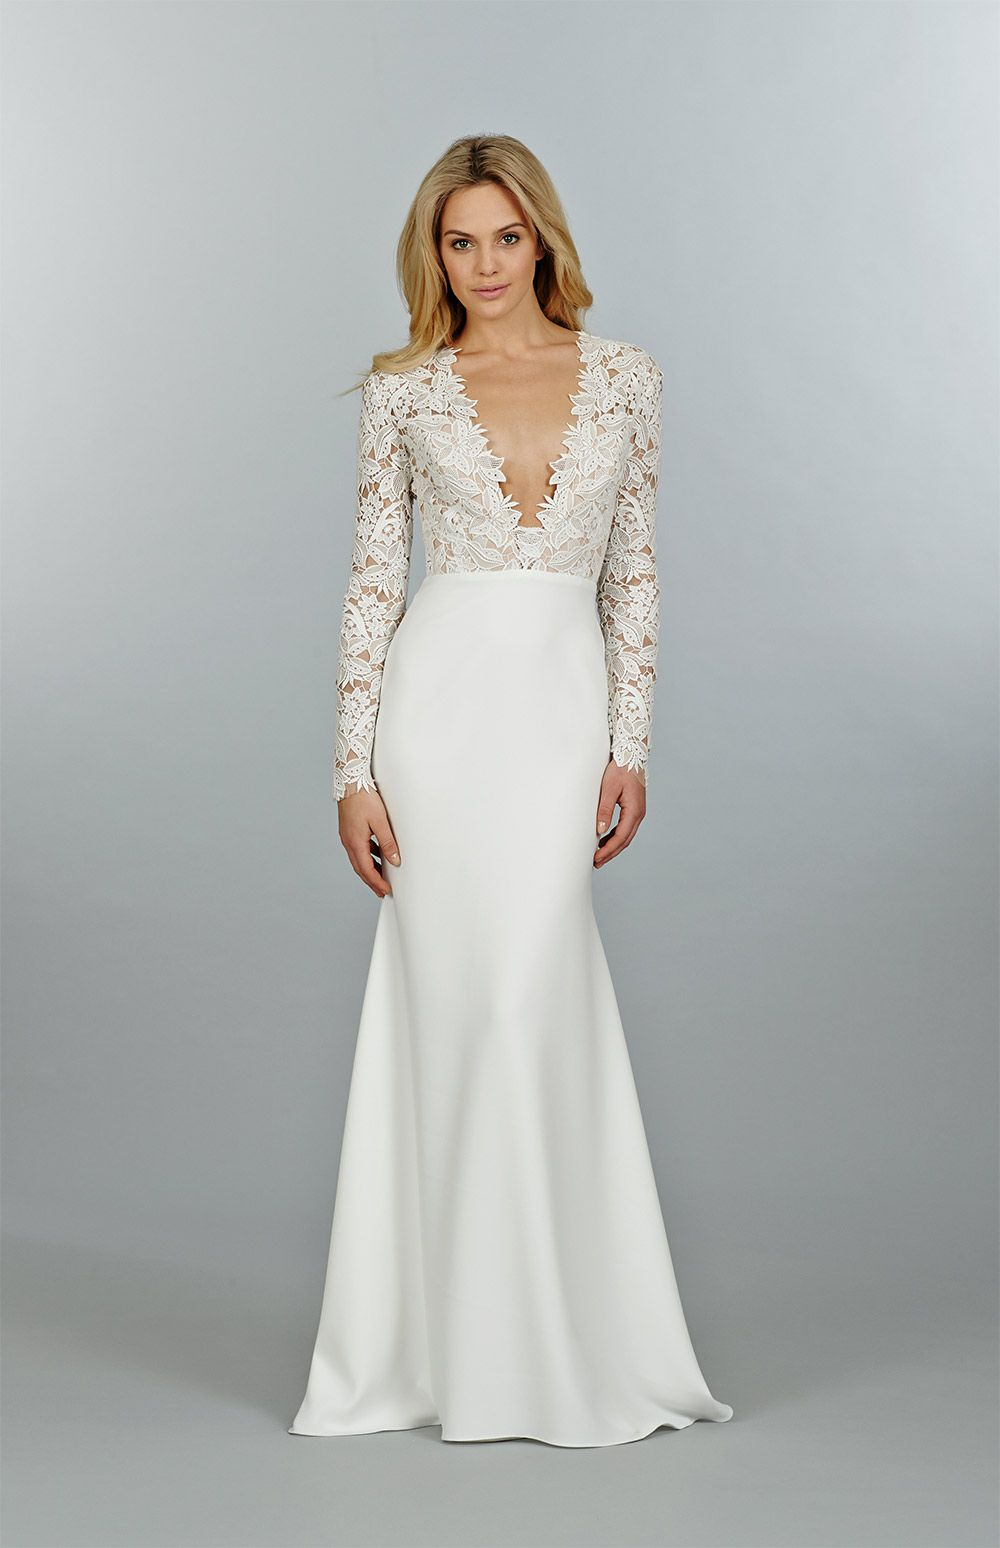 Twilight wedding dresses steal bella swan 39 s bridal style for Dress of wedding style